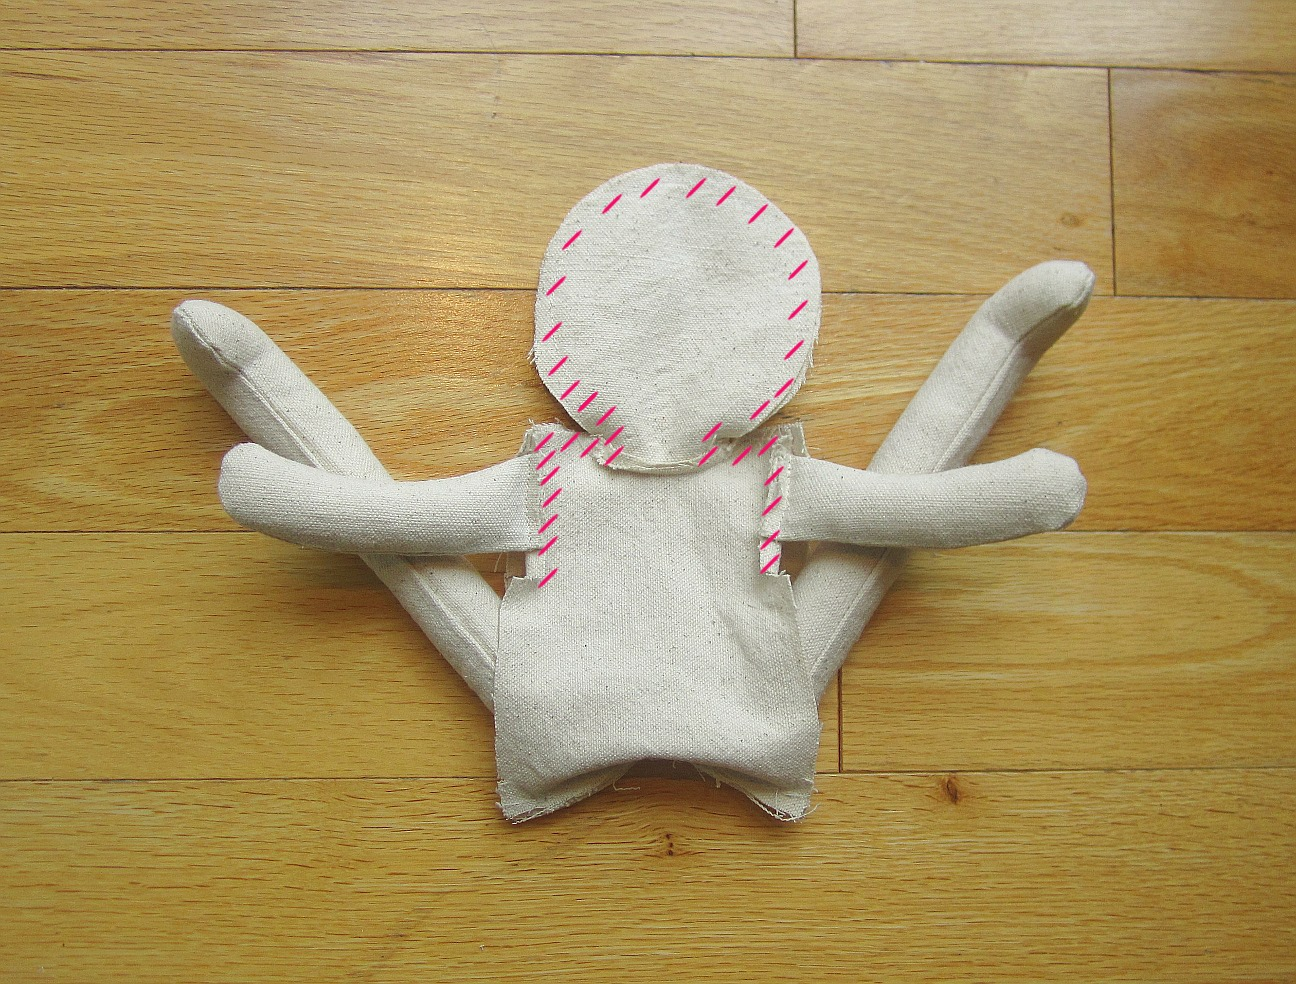 graphic about Printable Rag Doll Patterns named Rag Doll Absolutely free Sewing Practice and Recommendations Amie Scott